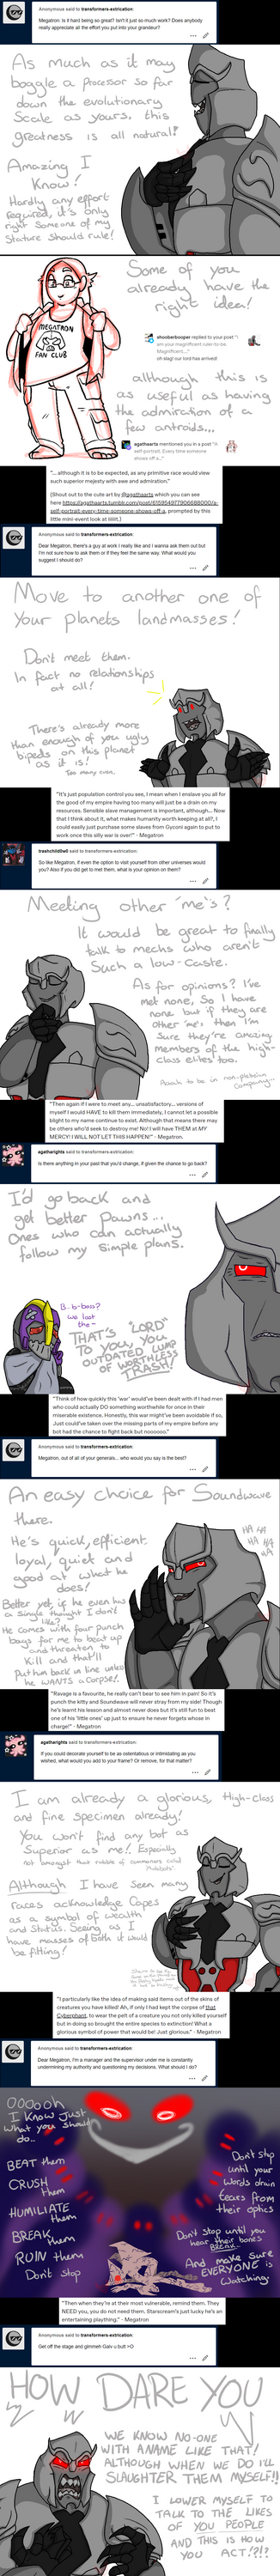 Extriverse Megatron (unfortunately) answers asks